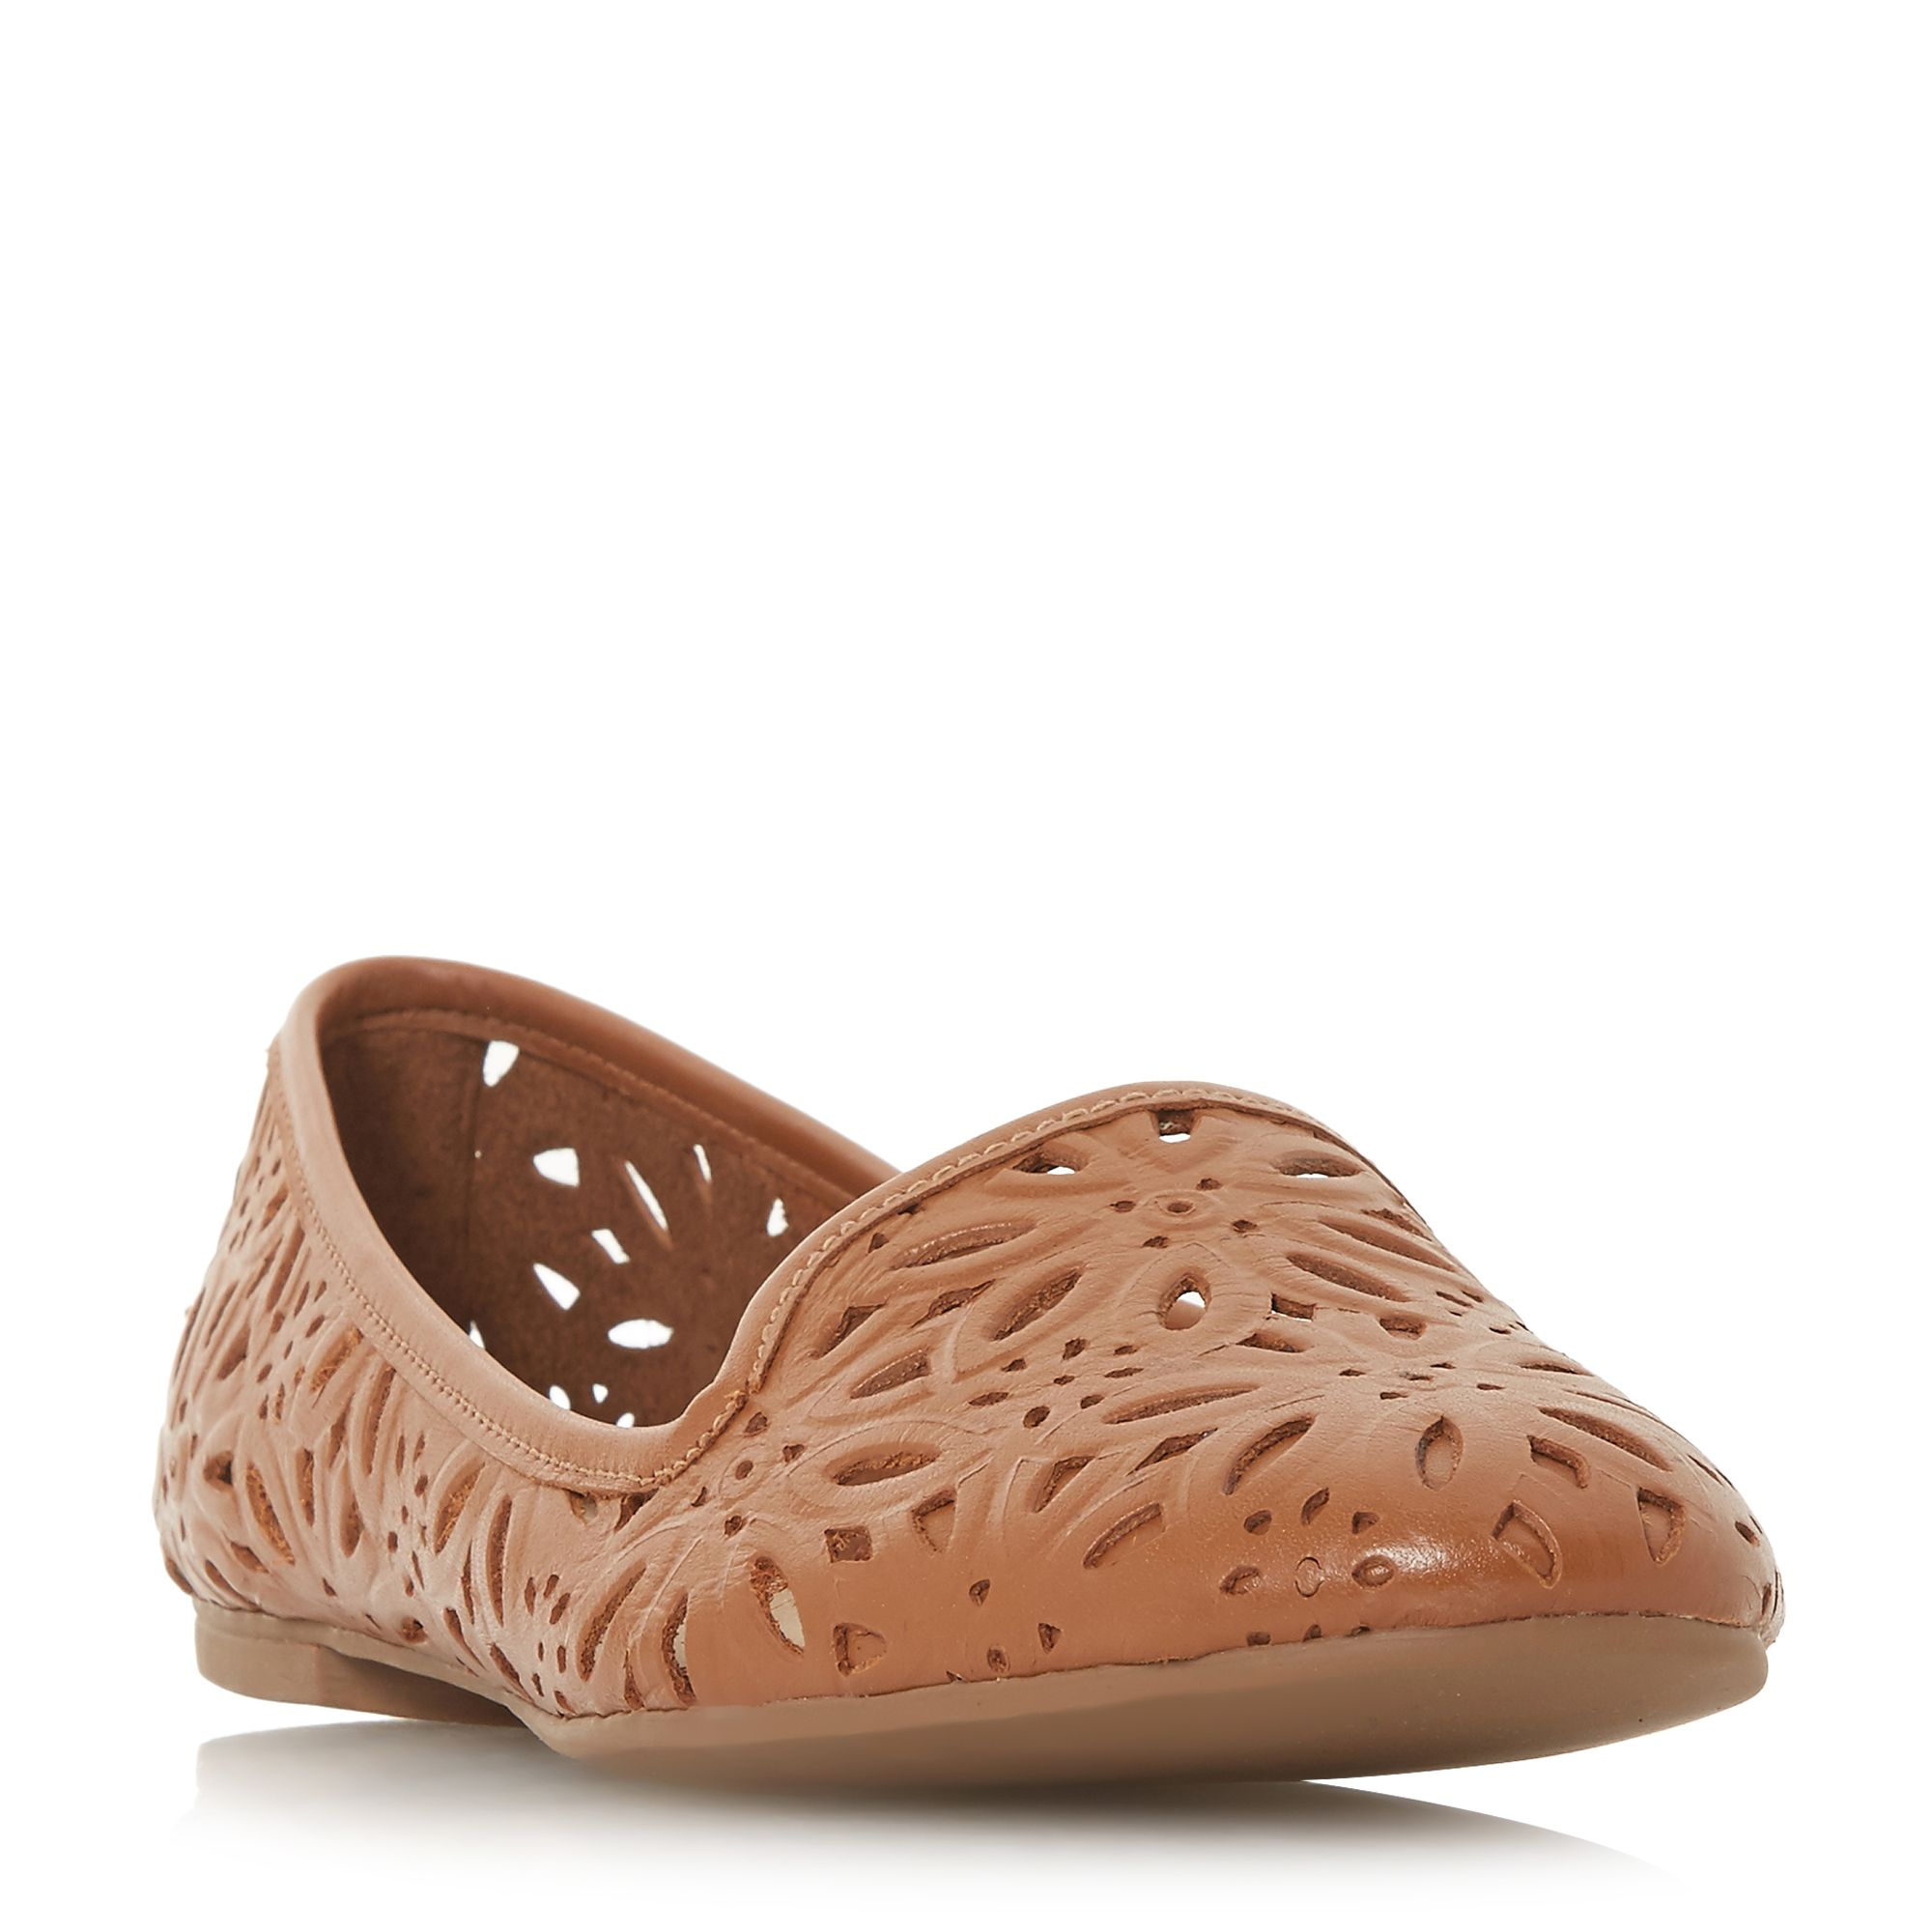 Dune Galatia Floral Laser Cut Slipper Pump Shoes, Tan